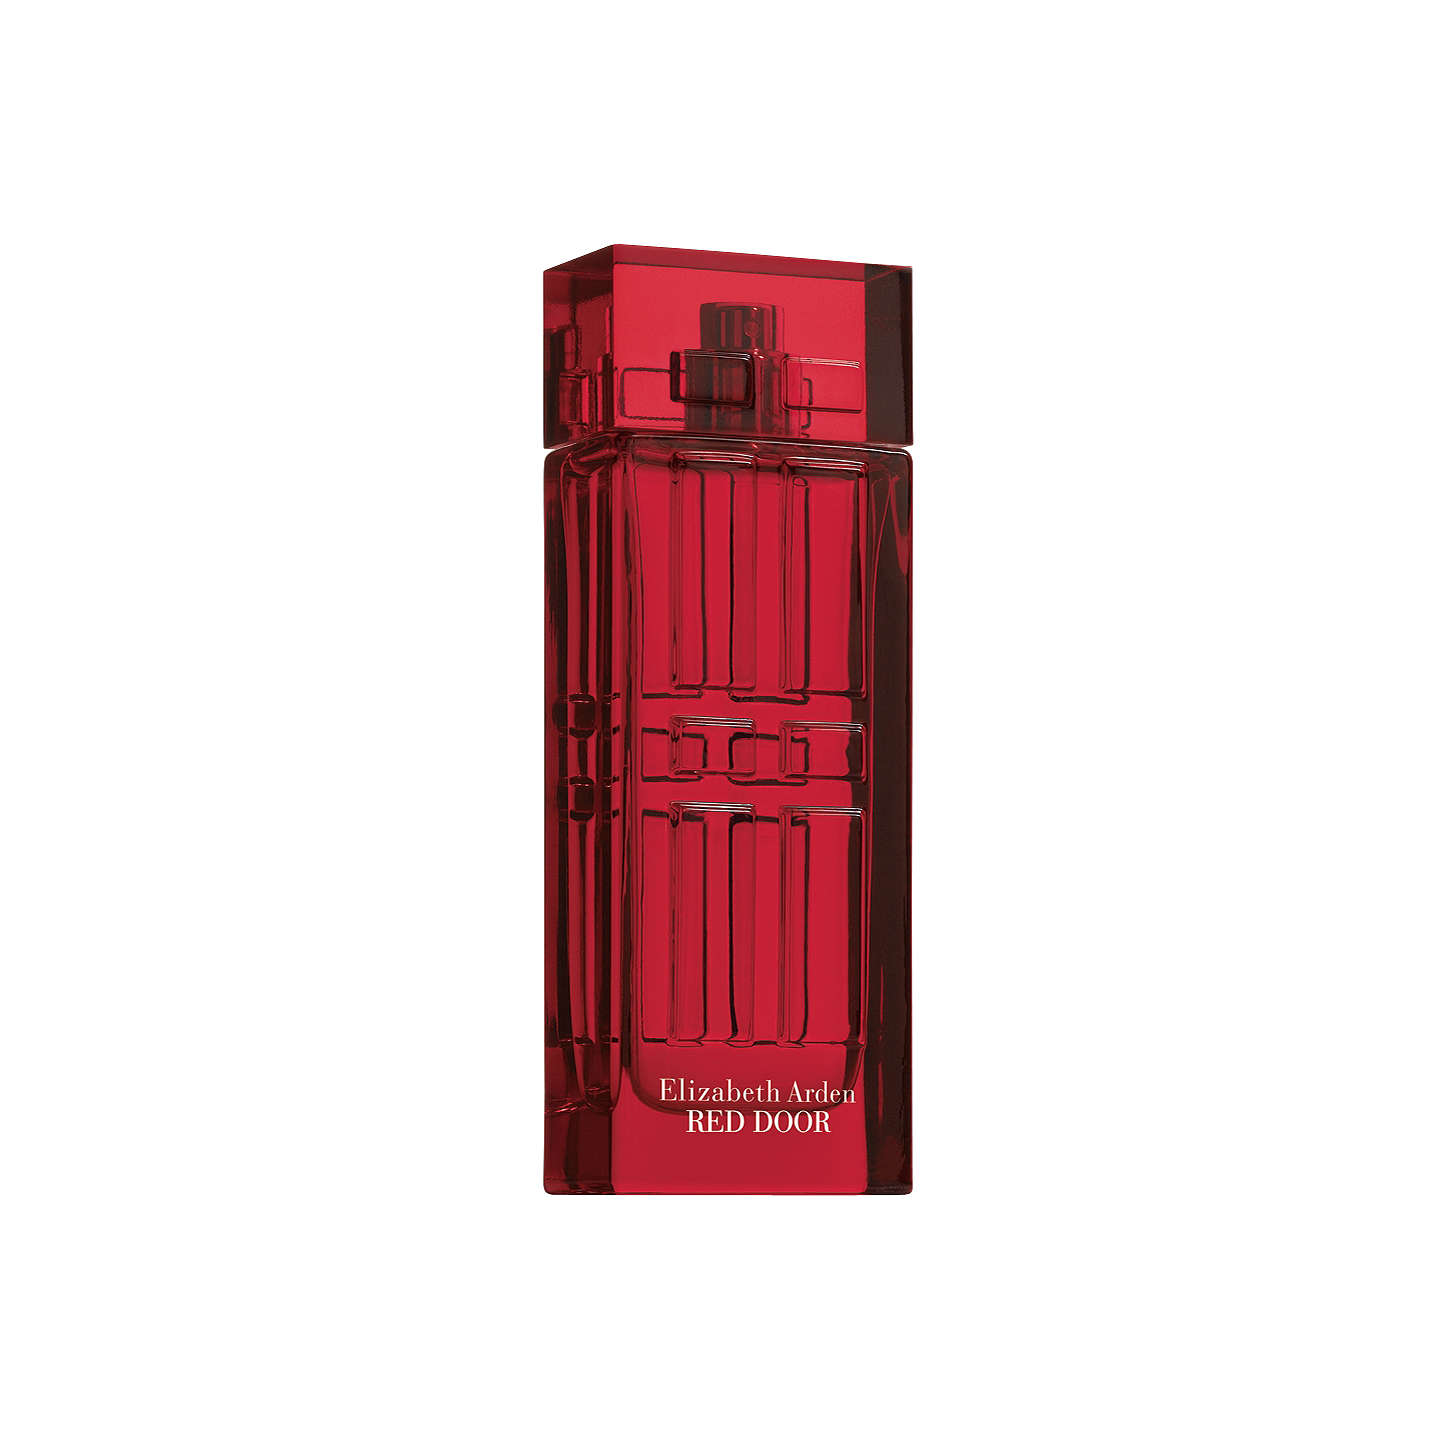 color reese lipstick arden red moisturizing march views beautiful door more edition elizabeth limited on